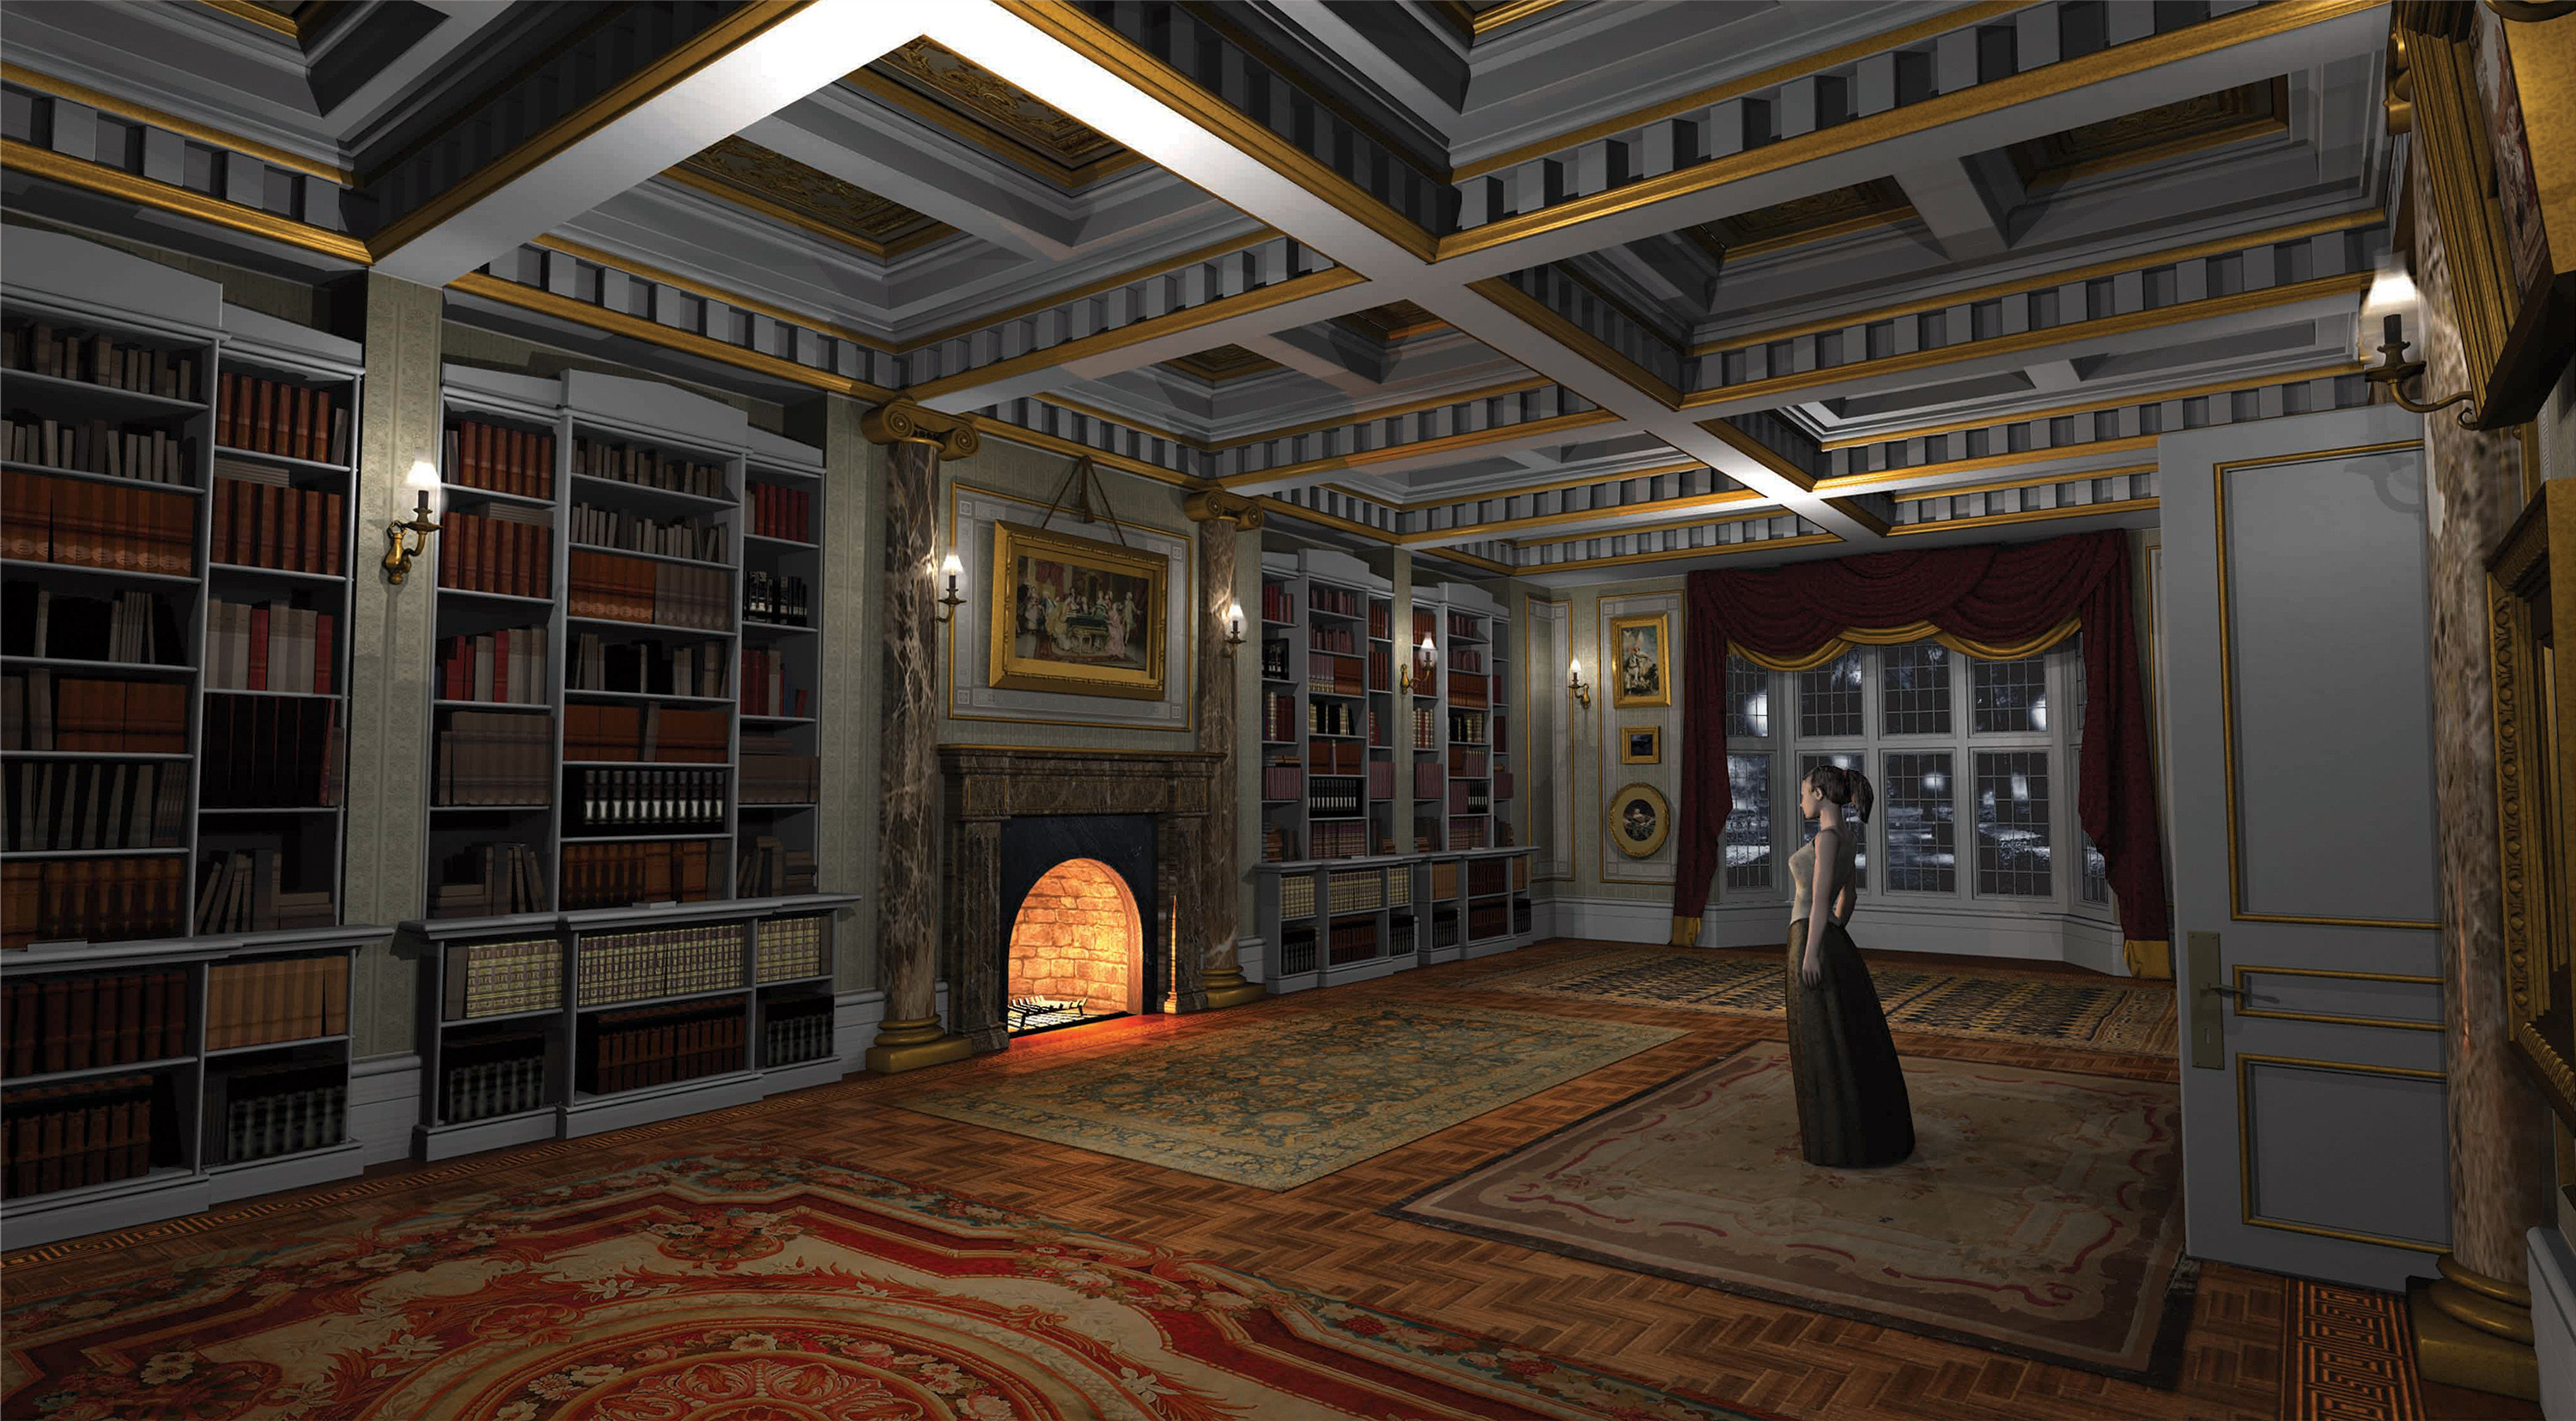 3D Victorian London Apartment Interior / Once Upon a Time Season 6